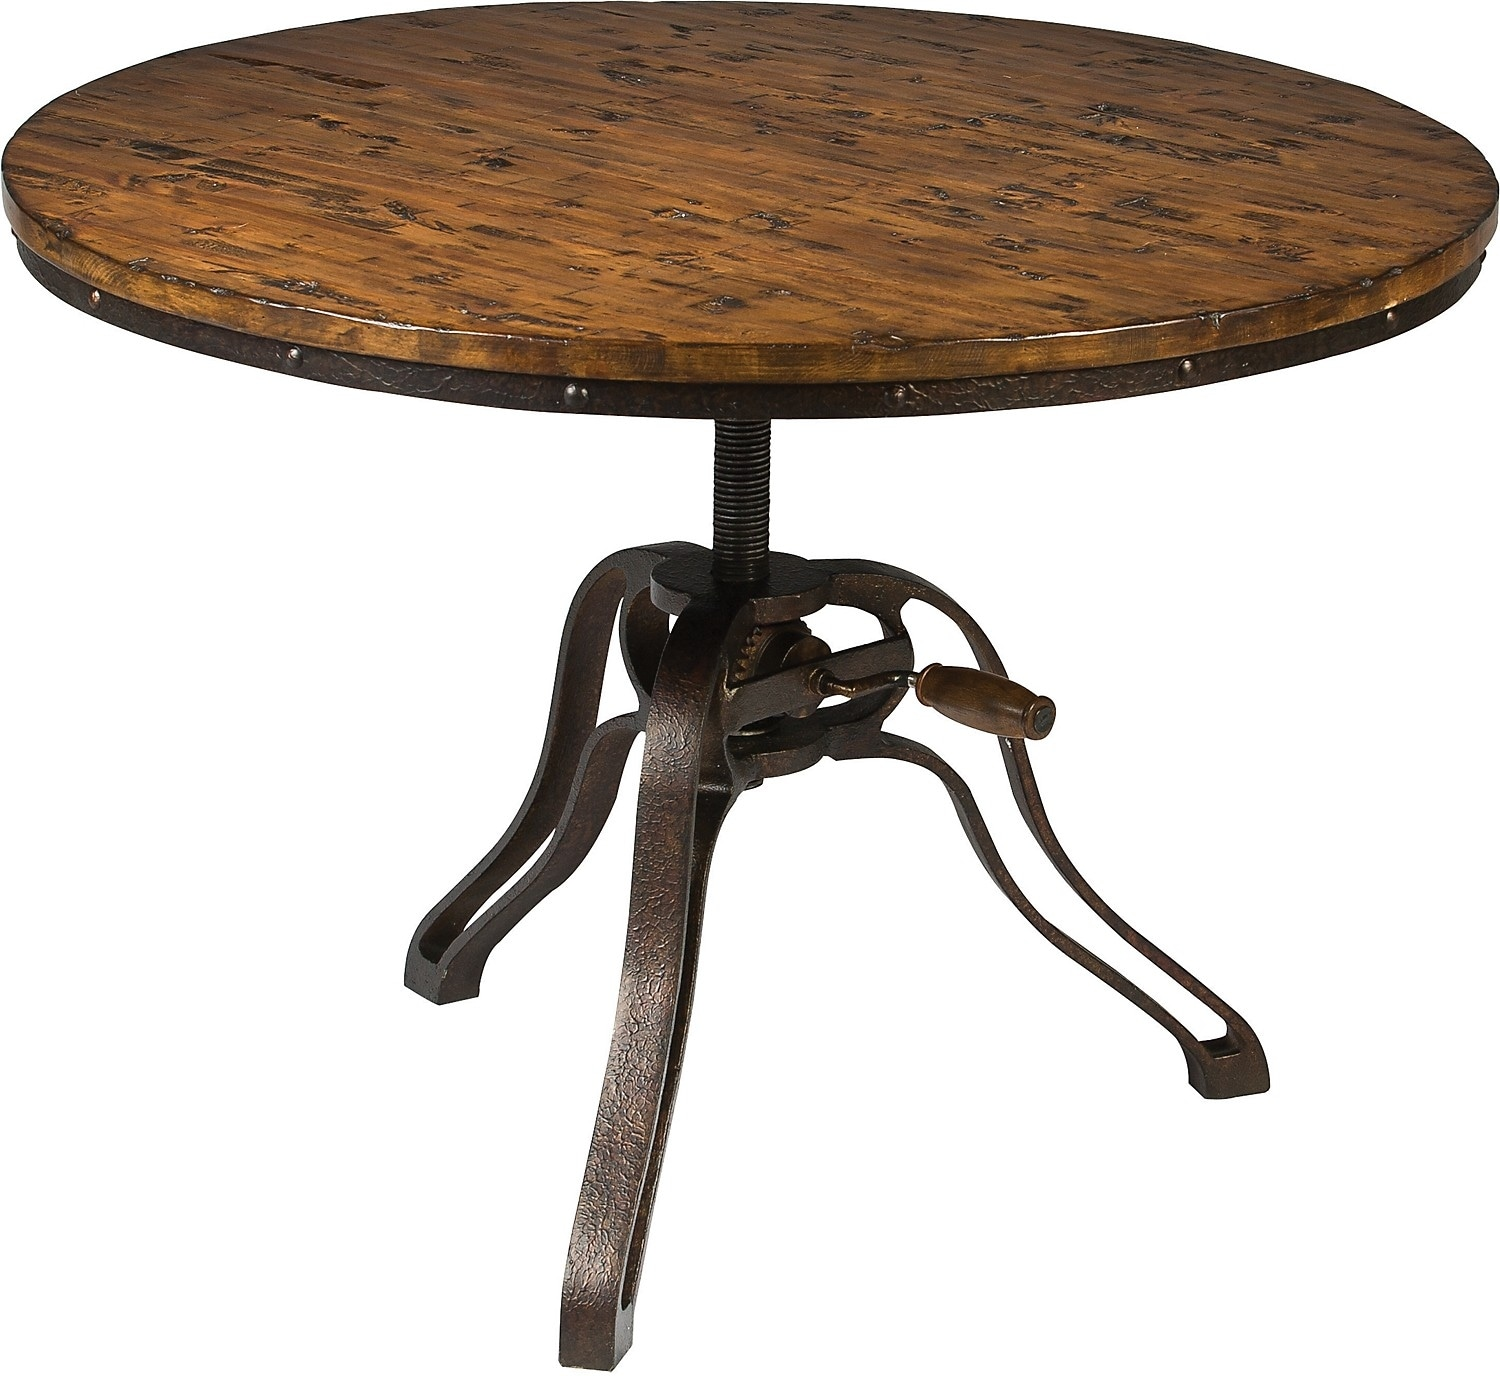 Magnussen Home Cranfill Round Cocktail Table: Cranfill Coffee Table With Lift Top